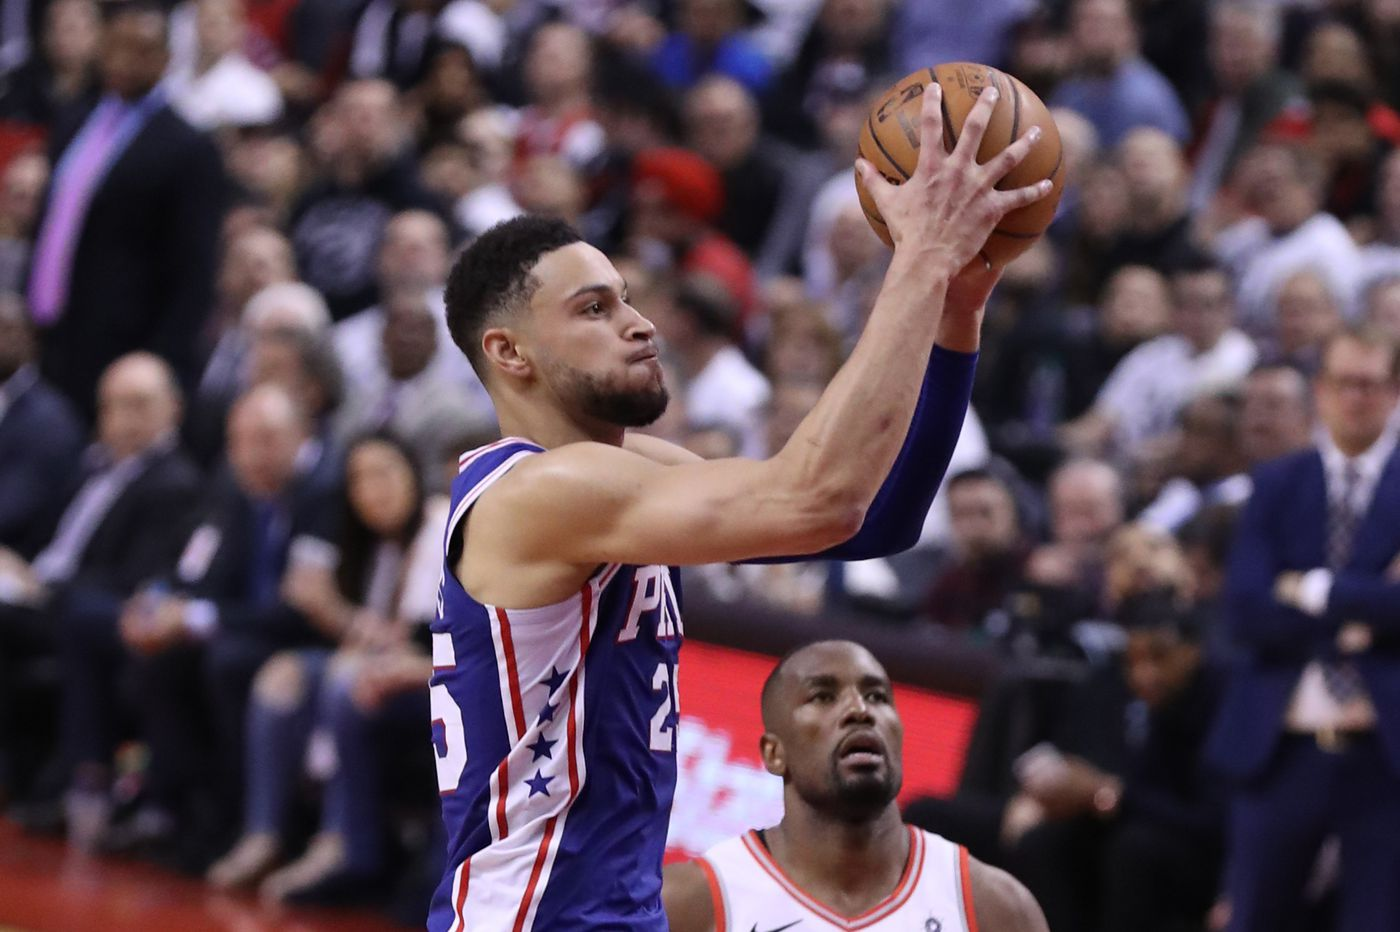 Sixers' Ben Simmons, tasked with guarding Raptors' Kawhi Leonard, played an iron-man role in Game 2